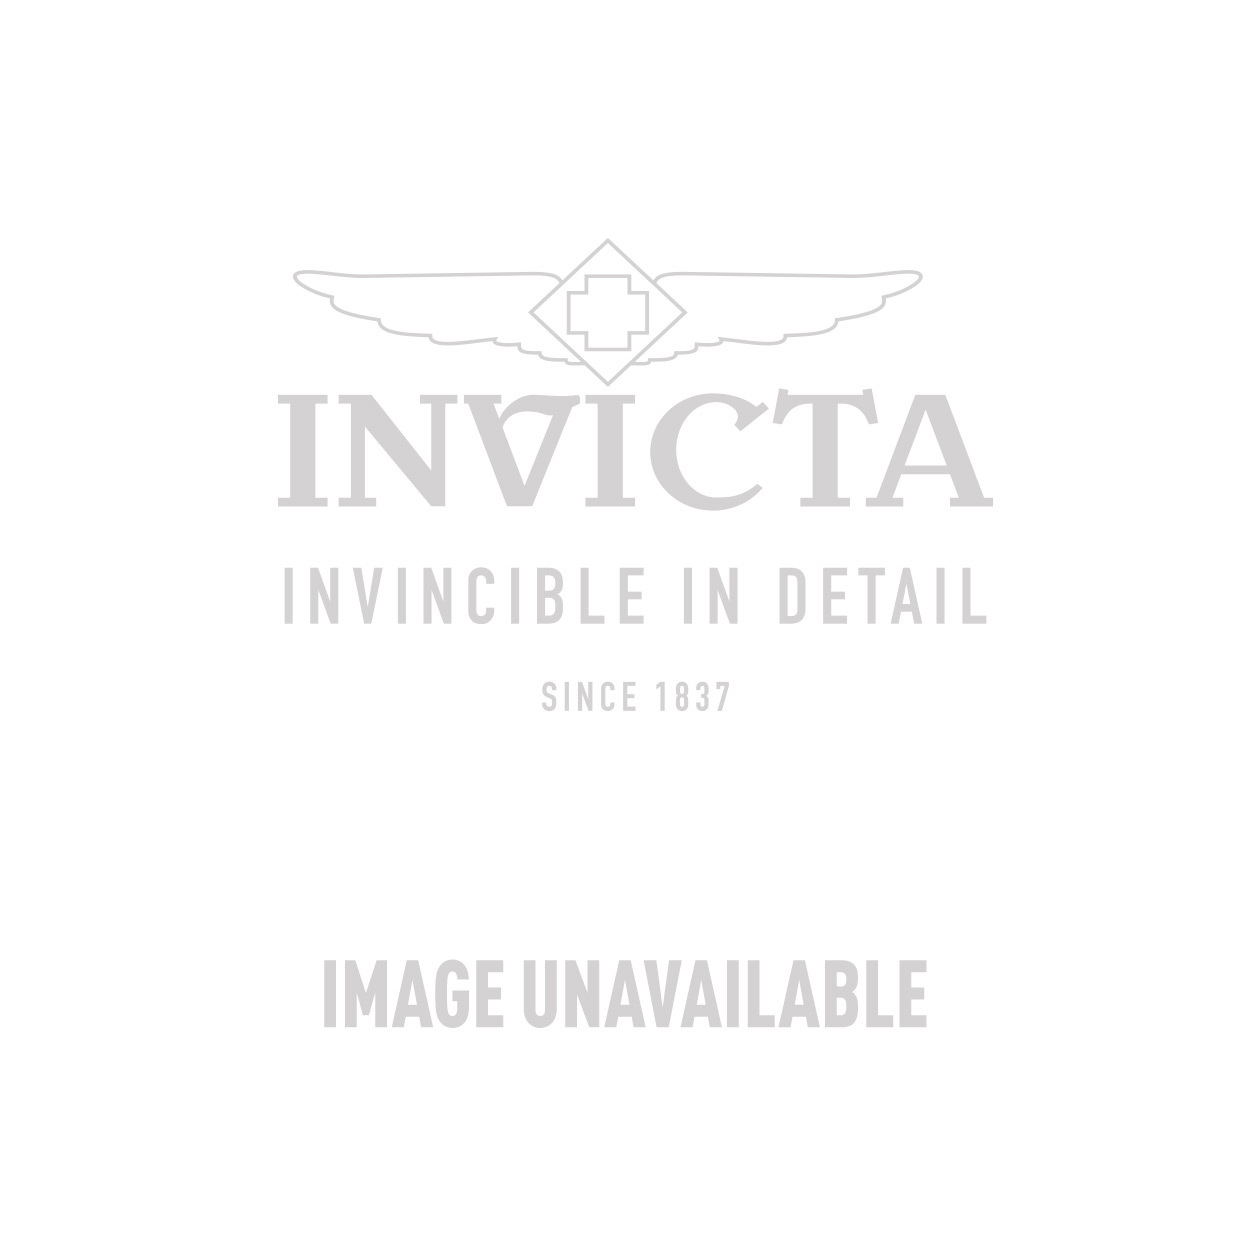 Invicta Specialty Quartz Watch - Gunmetal case with Gunmetal tone Stainless Steel band - Model 14879